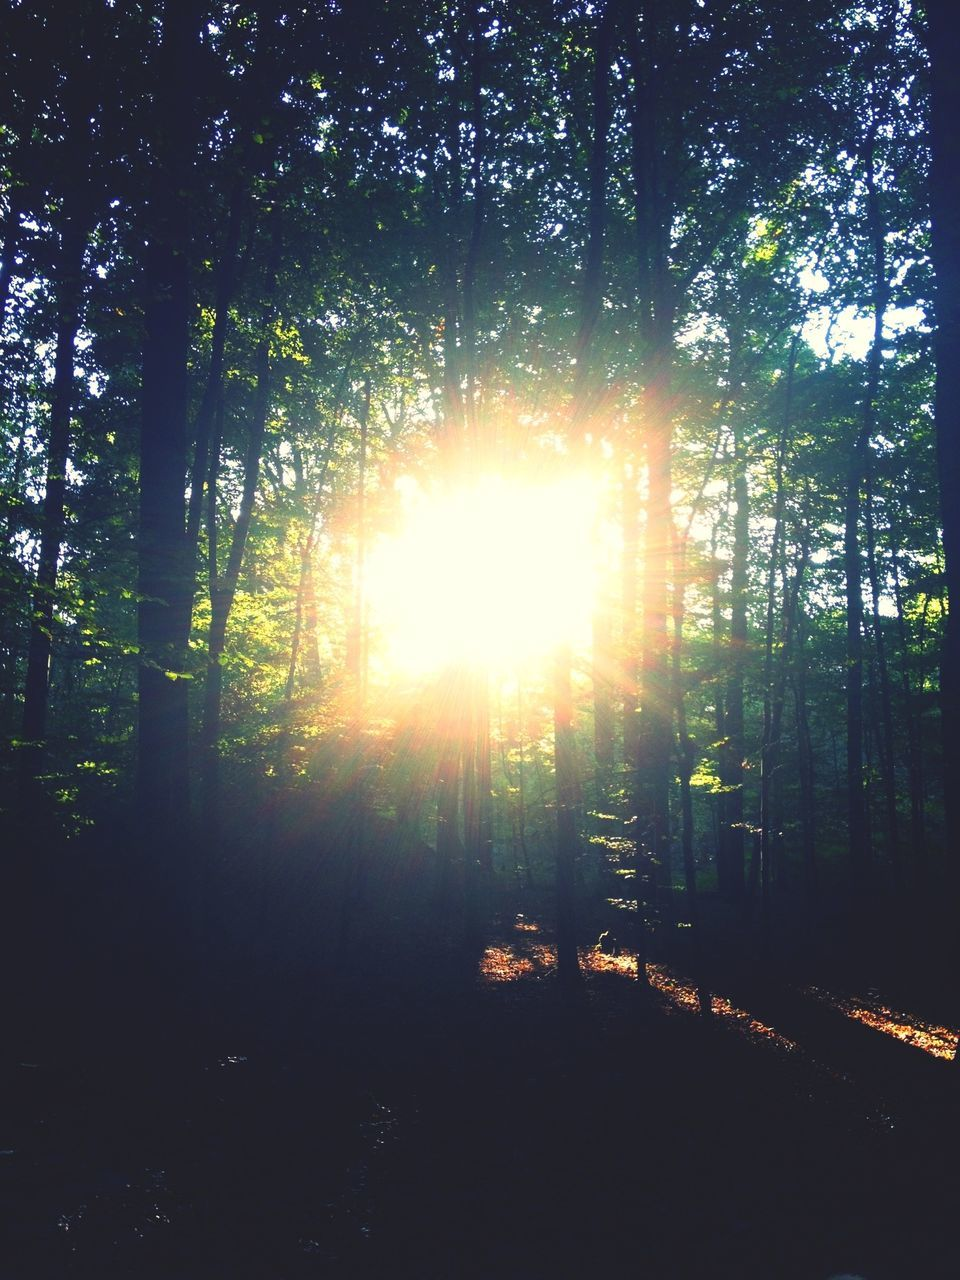 tree, forest, nature, sunbeam, sunlight, tranquility, tranquil scene, sun, beauty in nature, scenics, lens flare, growth, no people, tree trunk, outdoors, woodland, day, environment, landscape, travel destinations, tree area, sky